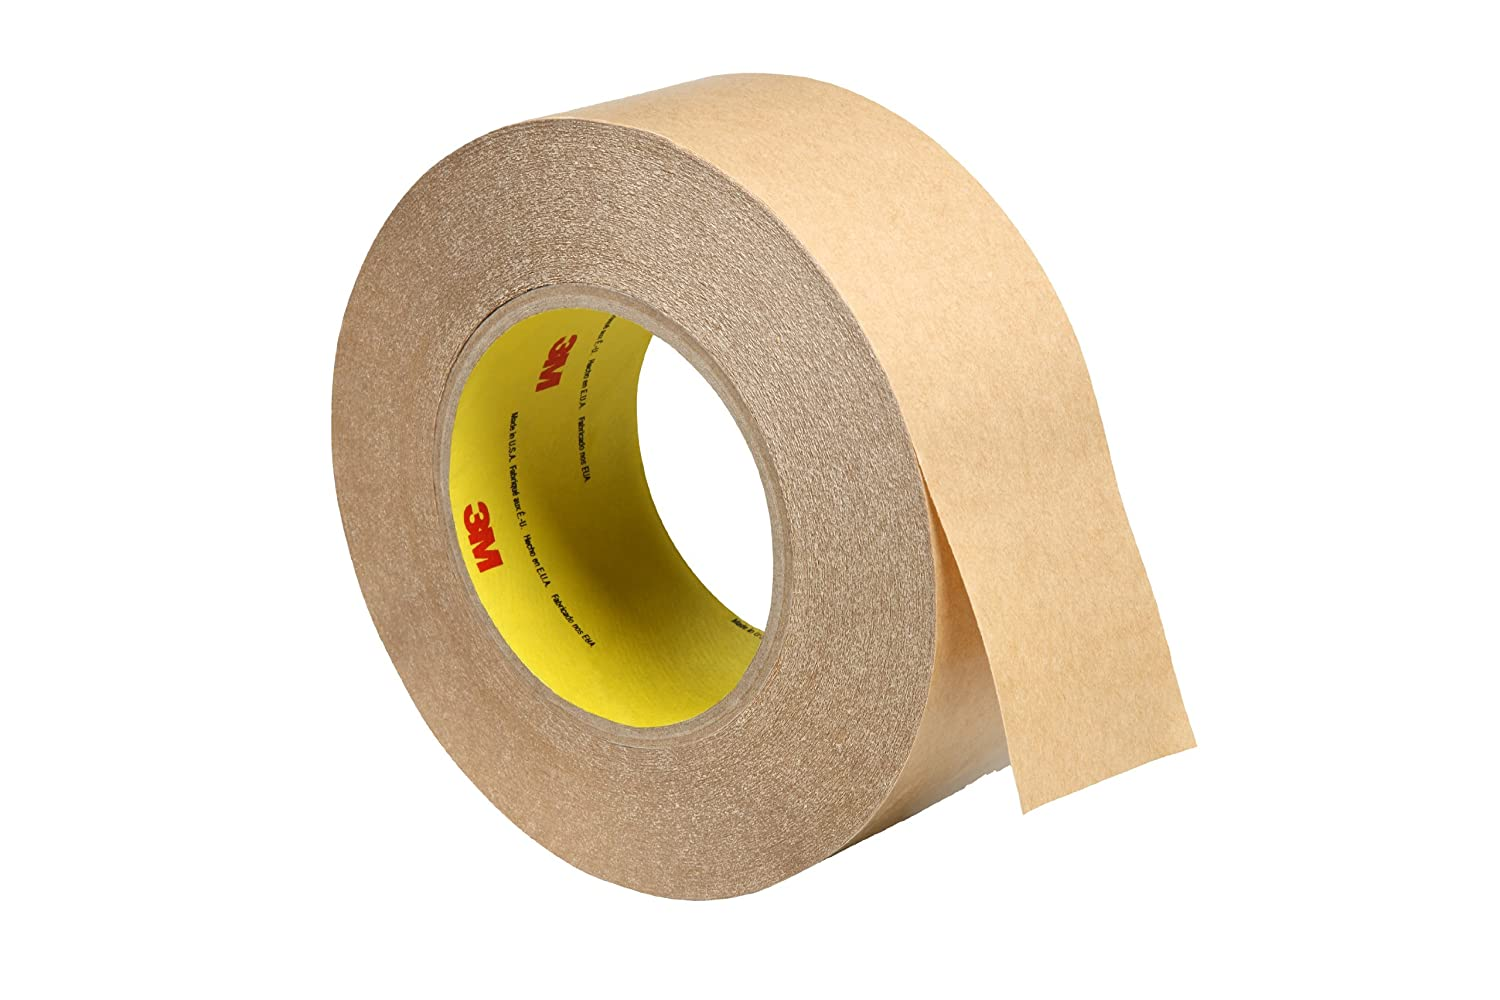 3M Double Coated Tape 9576 Clear Kut, 2 in x 60 yd 4.0 mil (Pack of 12) by 3M B000V4P9QK